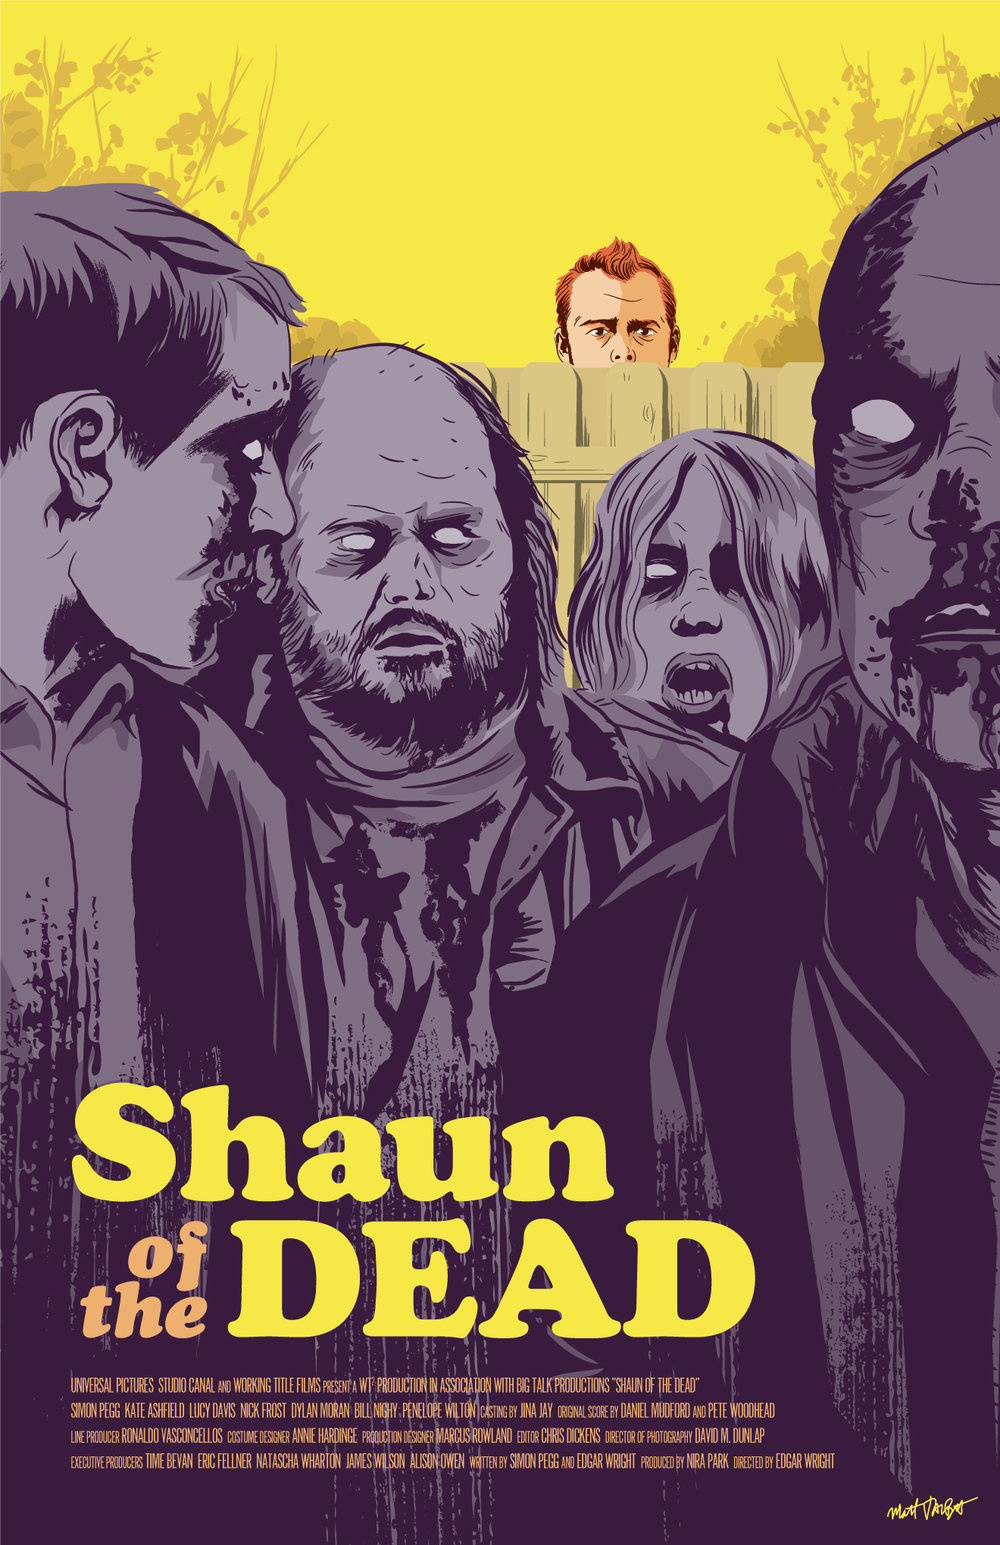 Shaun of the Dead poster by Matt Talbot